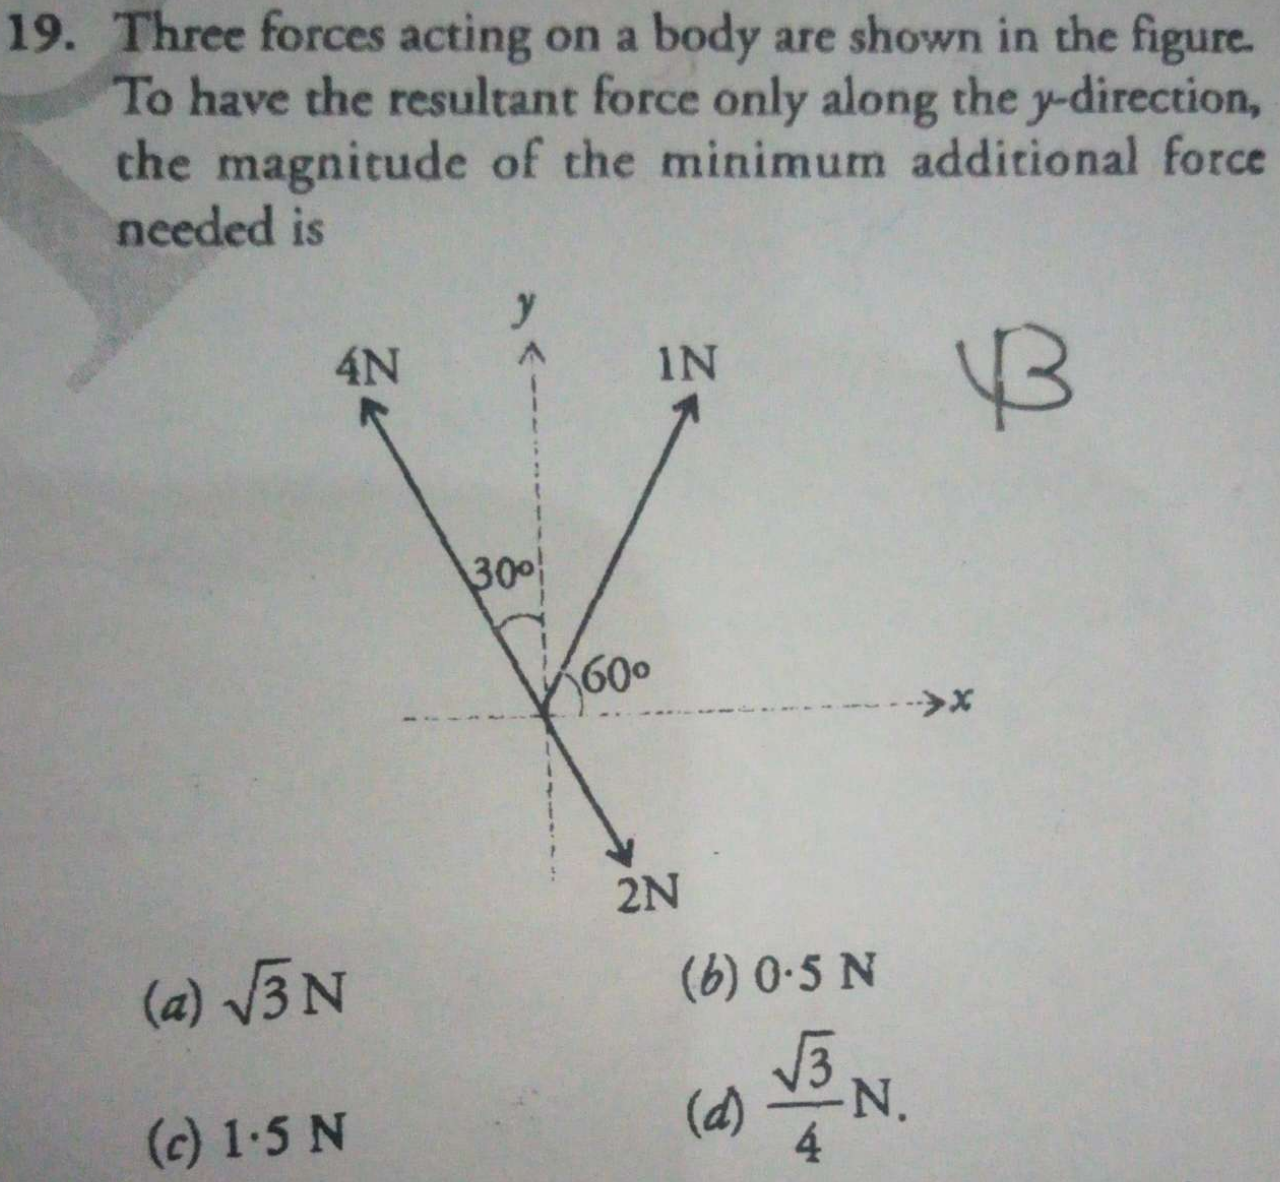 Three forces acting on a body are shown in the figure.To have the resultant force only along the y-direction,the magnitude of the minimum additional force needed is